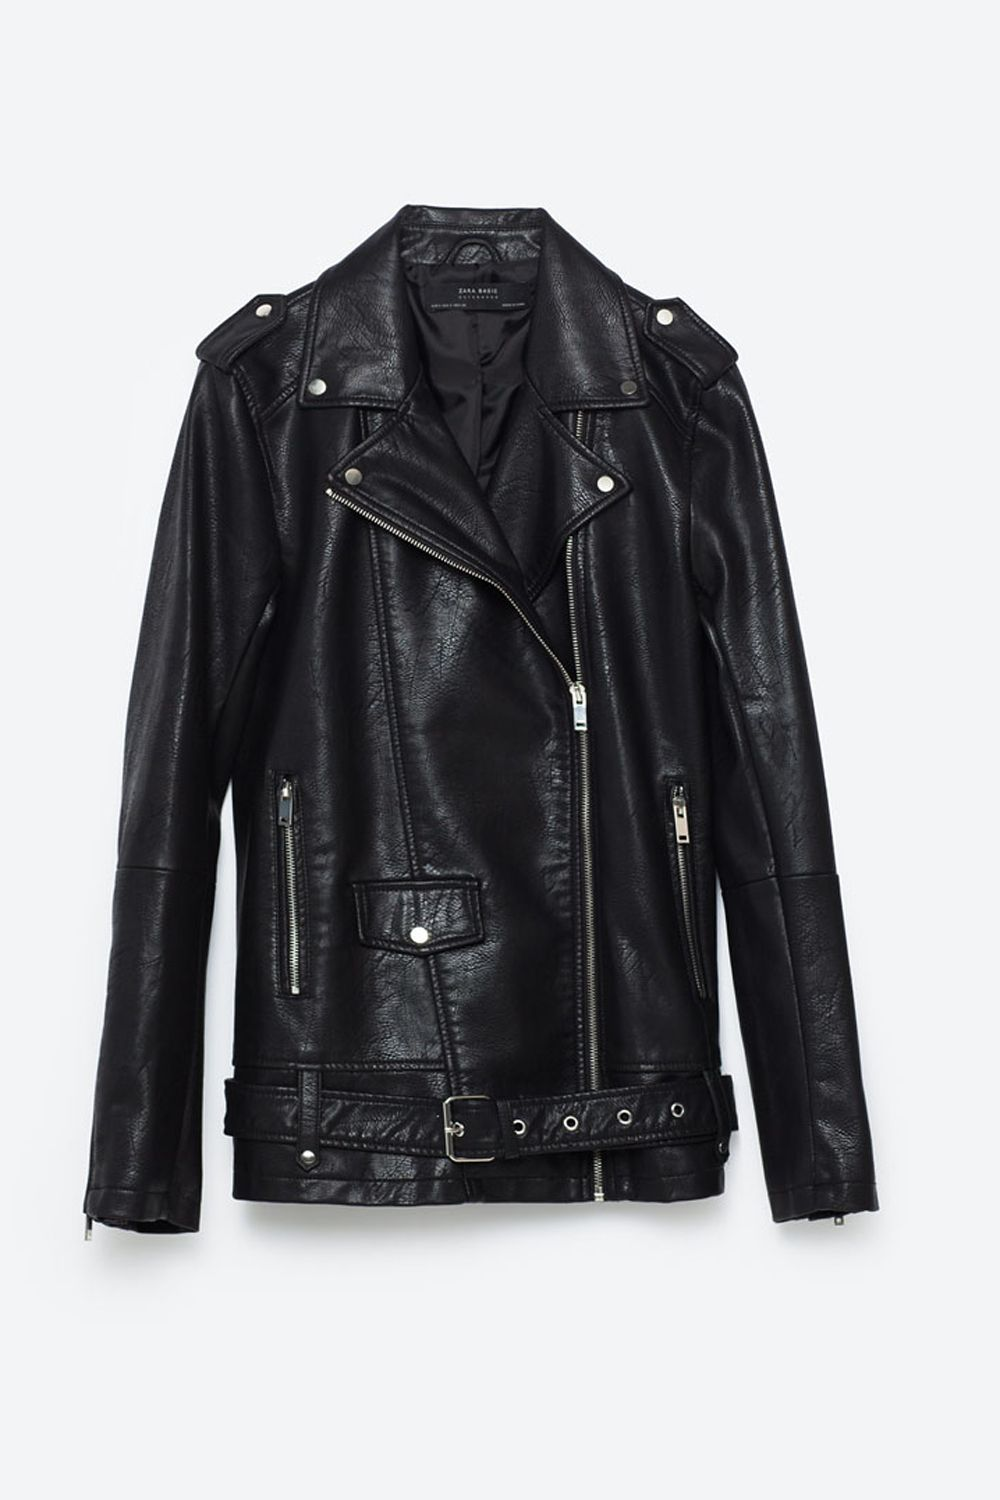 Top 25 leather jackets